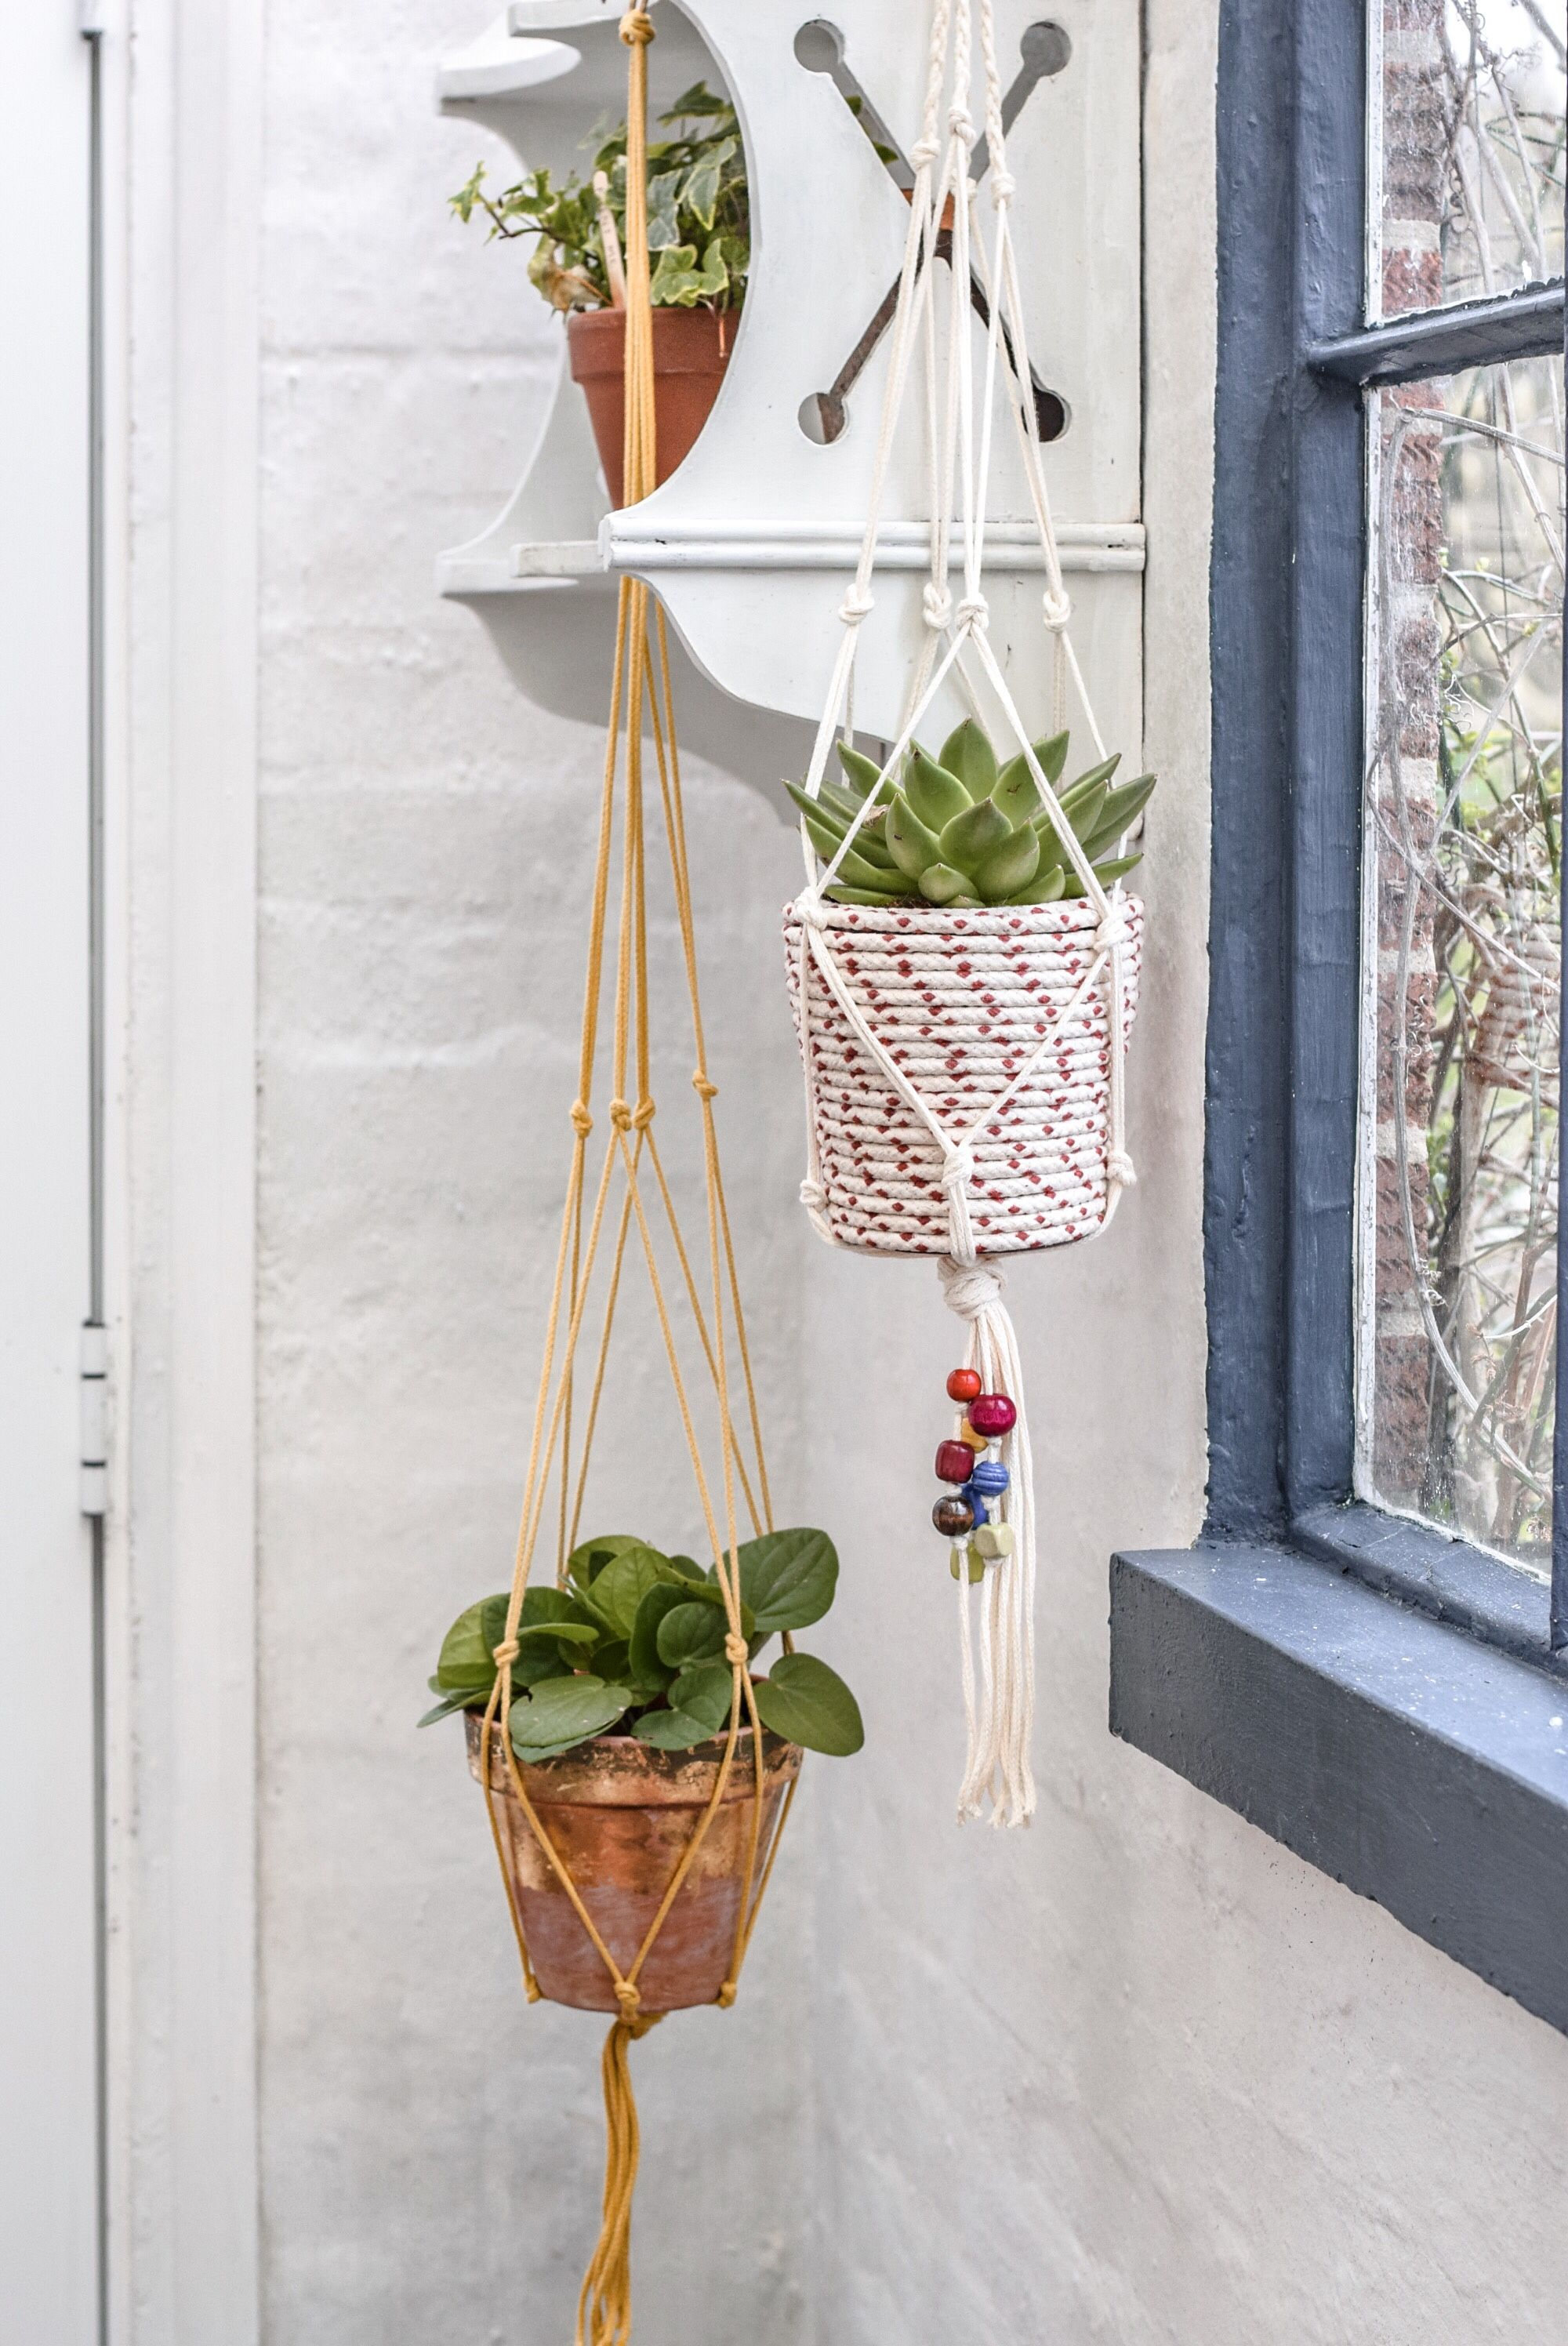 How to make a simple macrame plant hanger with hobbycraft